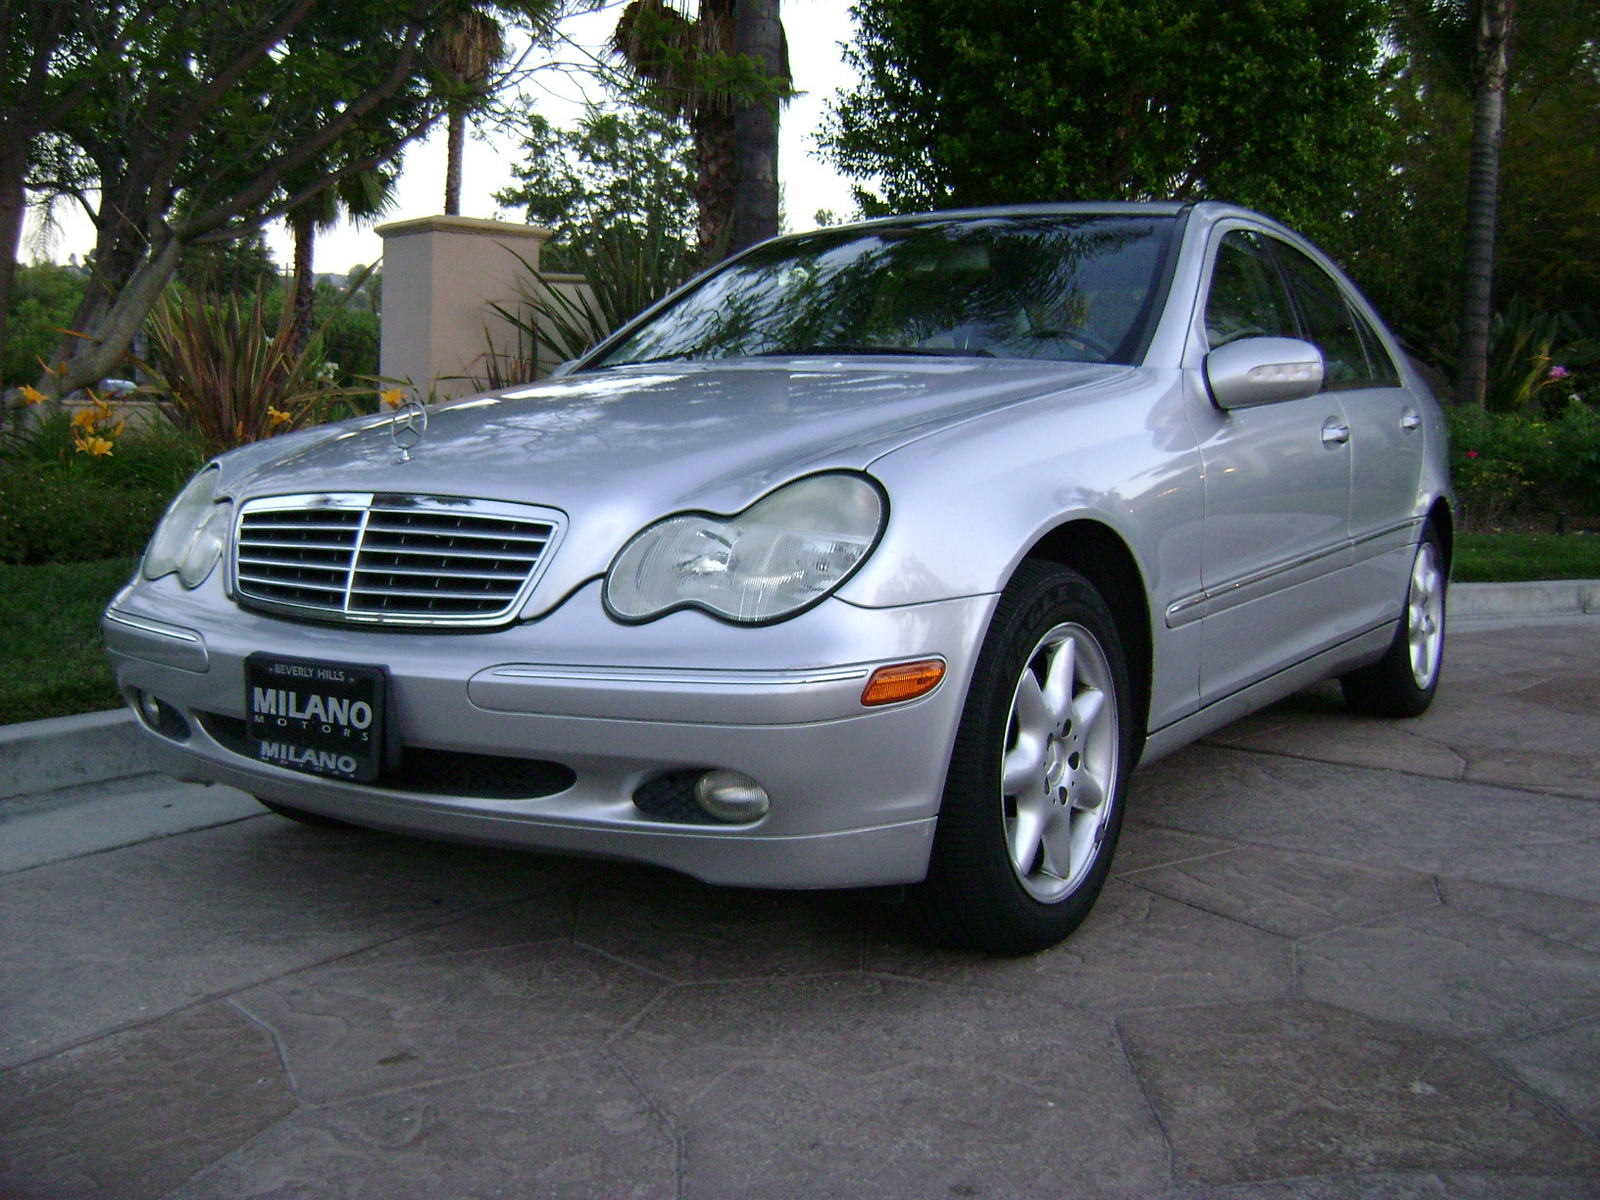 2001 mercedes benz c class pictures cargurus for 2001 mercedes benz s500 specs